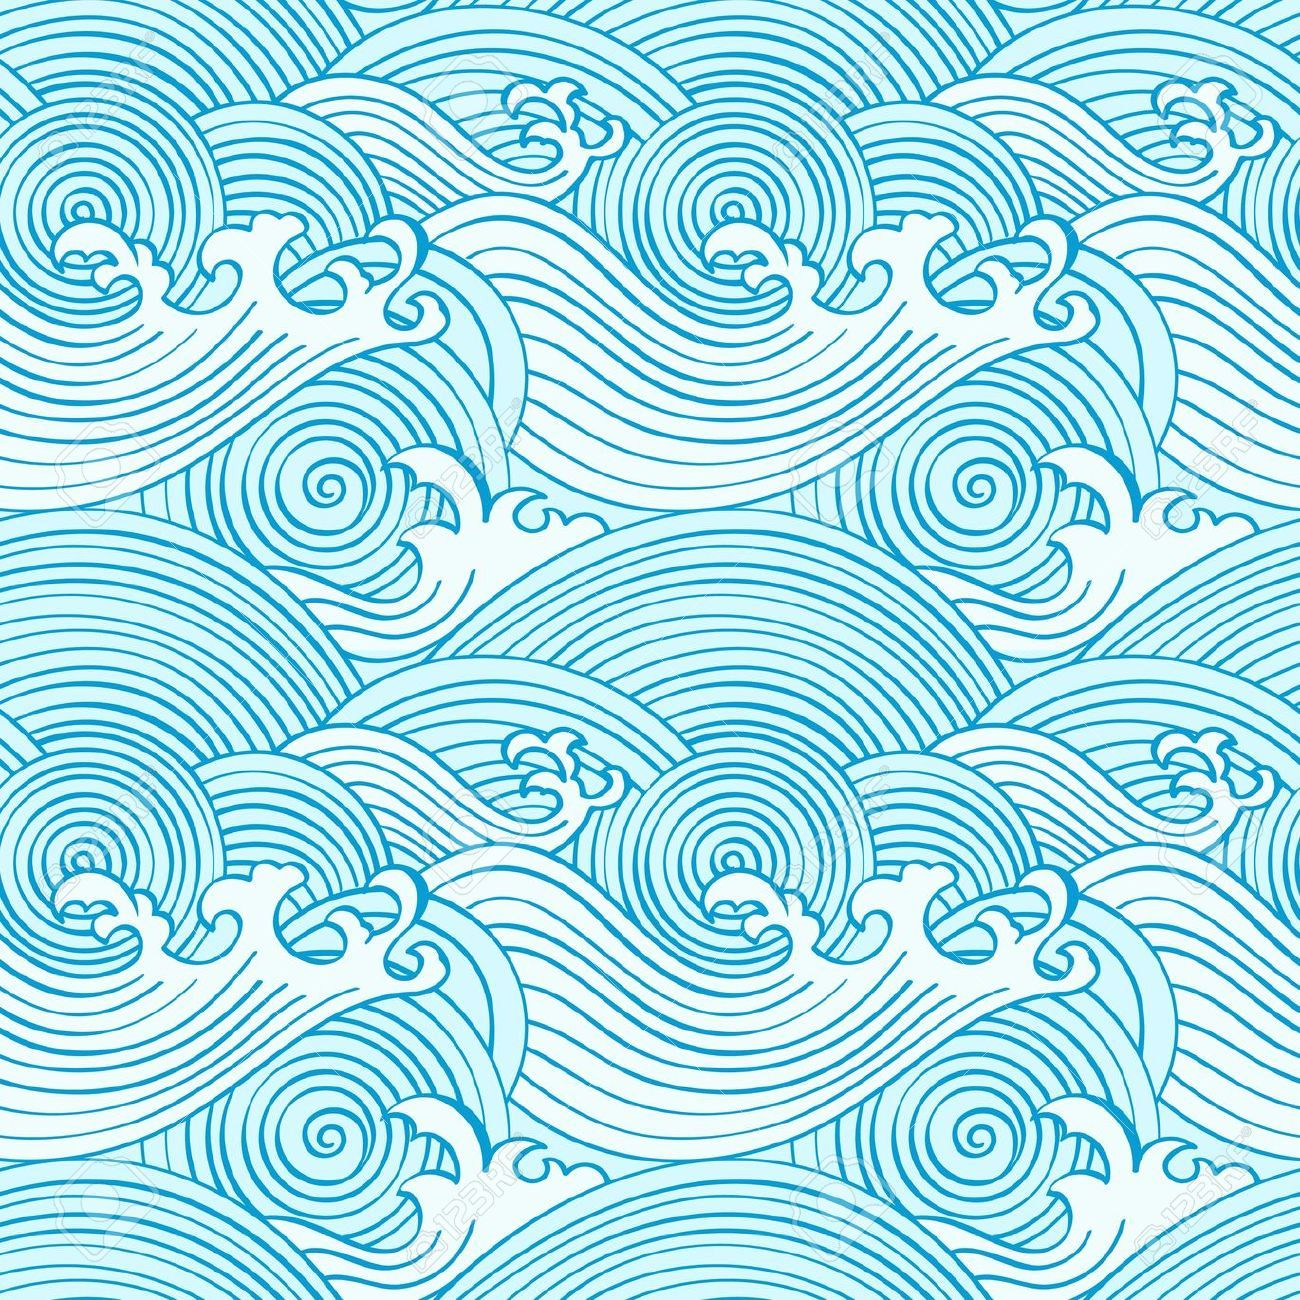 Stock vector inspiration patterns. Waves clipart wave japanese